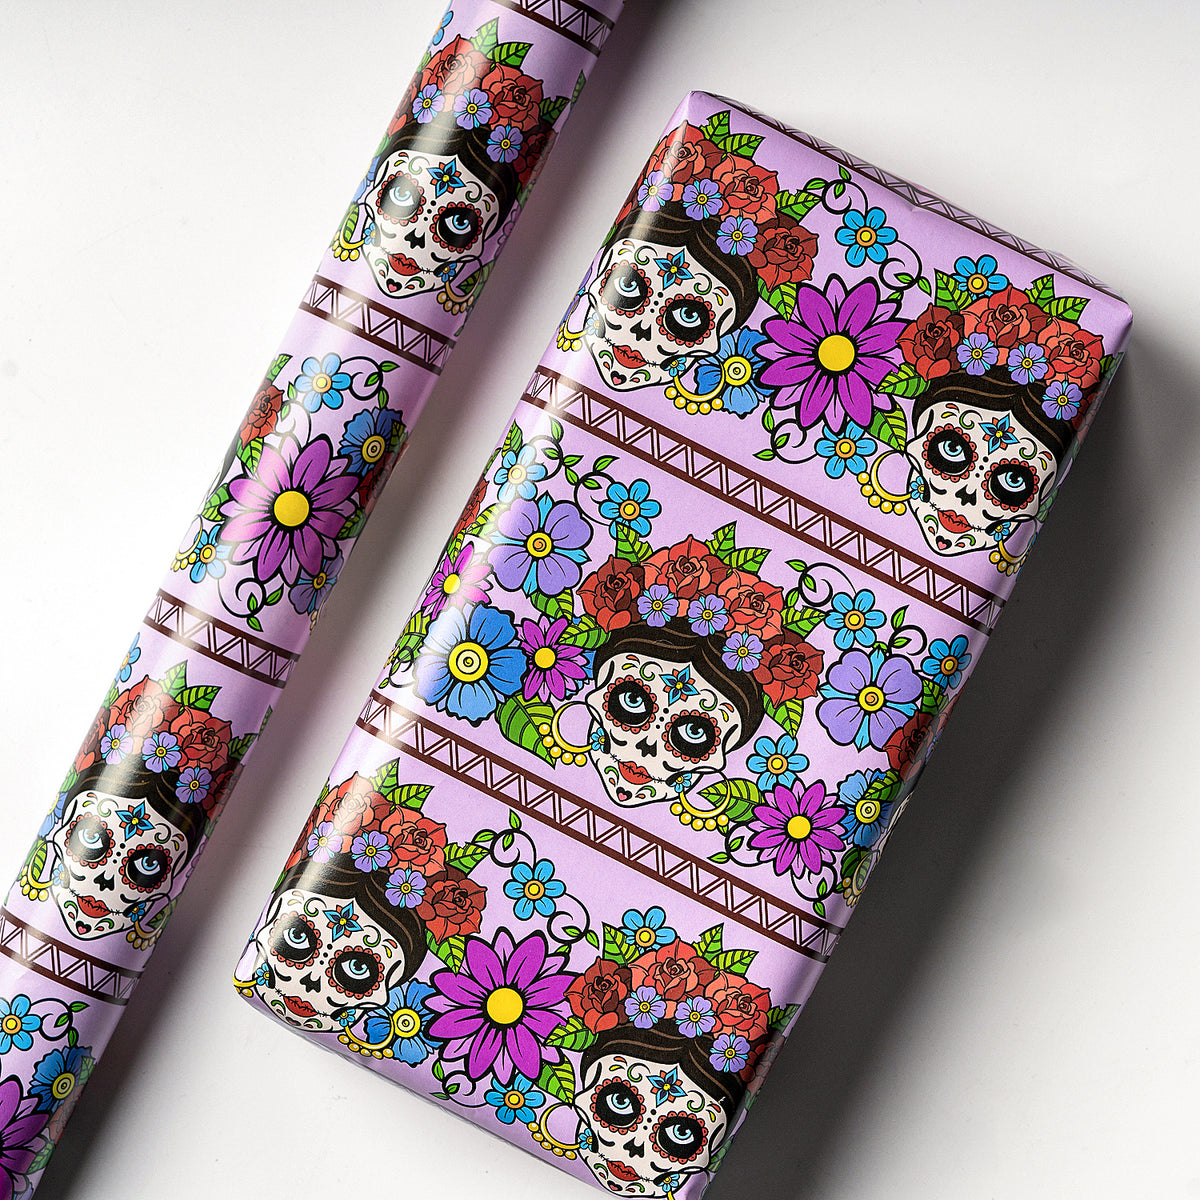 Wrapaholic-Skull-Design-Gift-Wrapping-Paper-Sheet-2